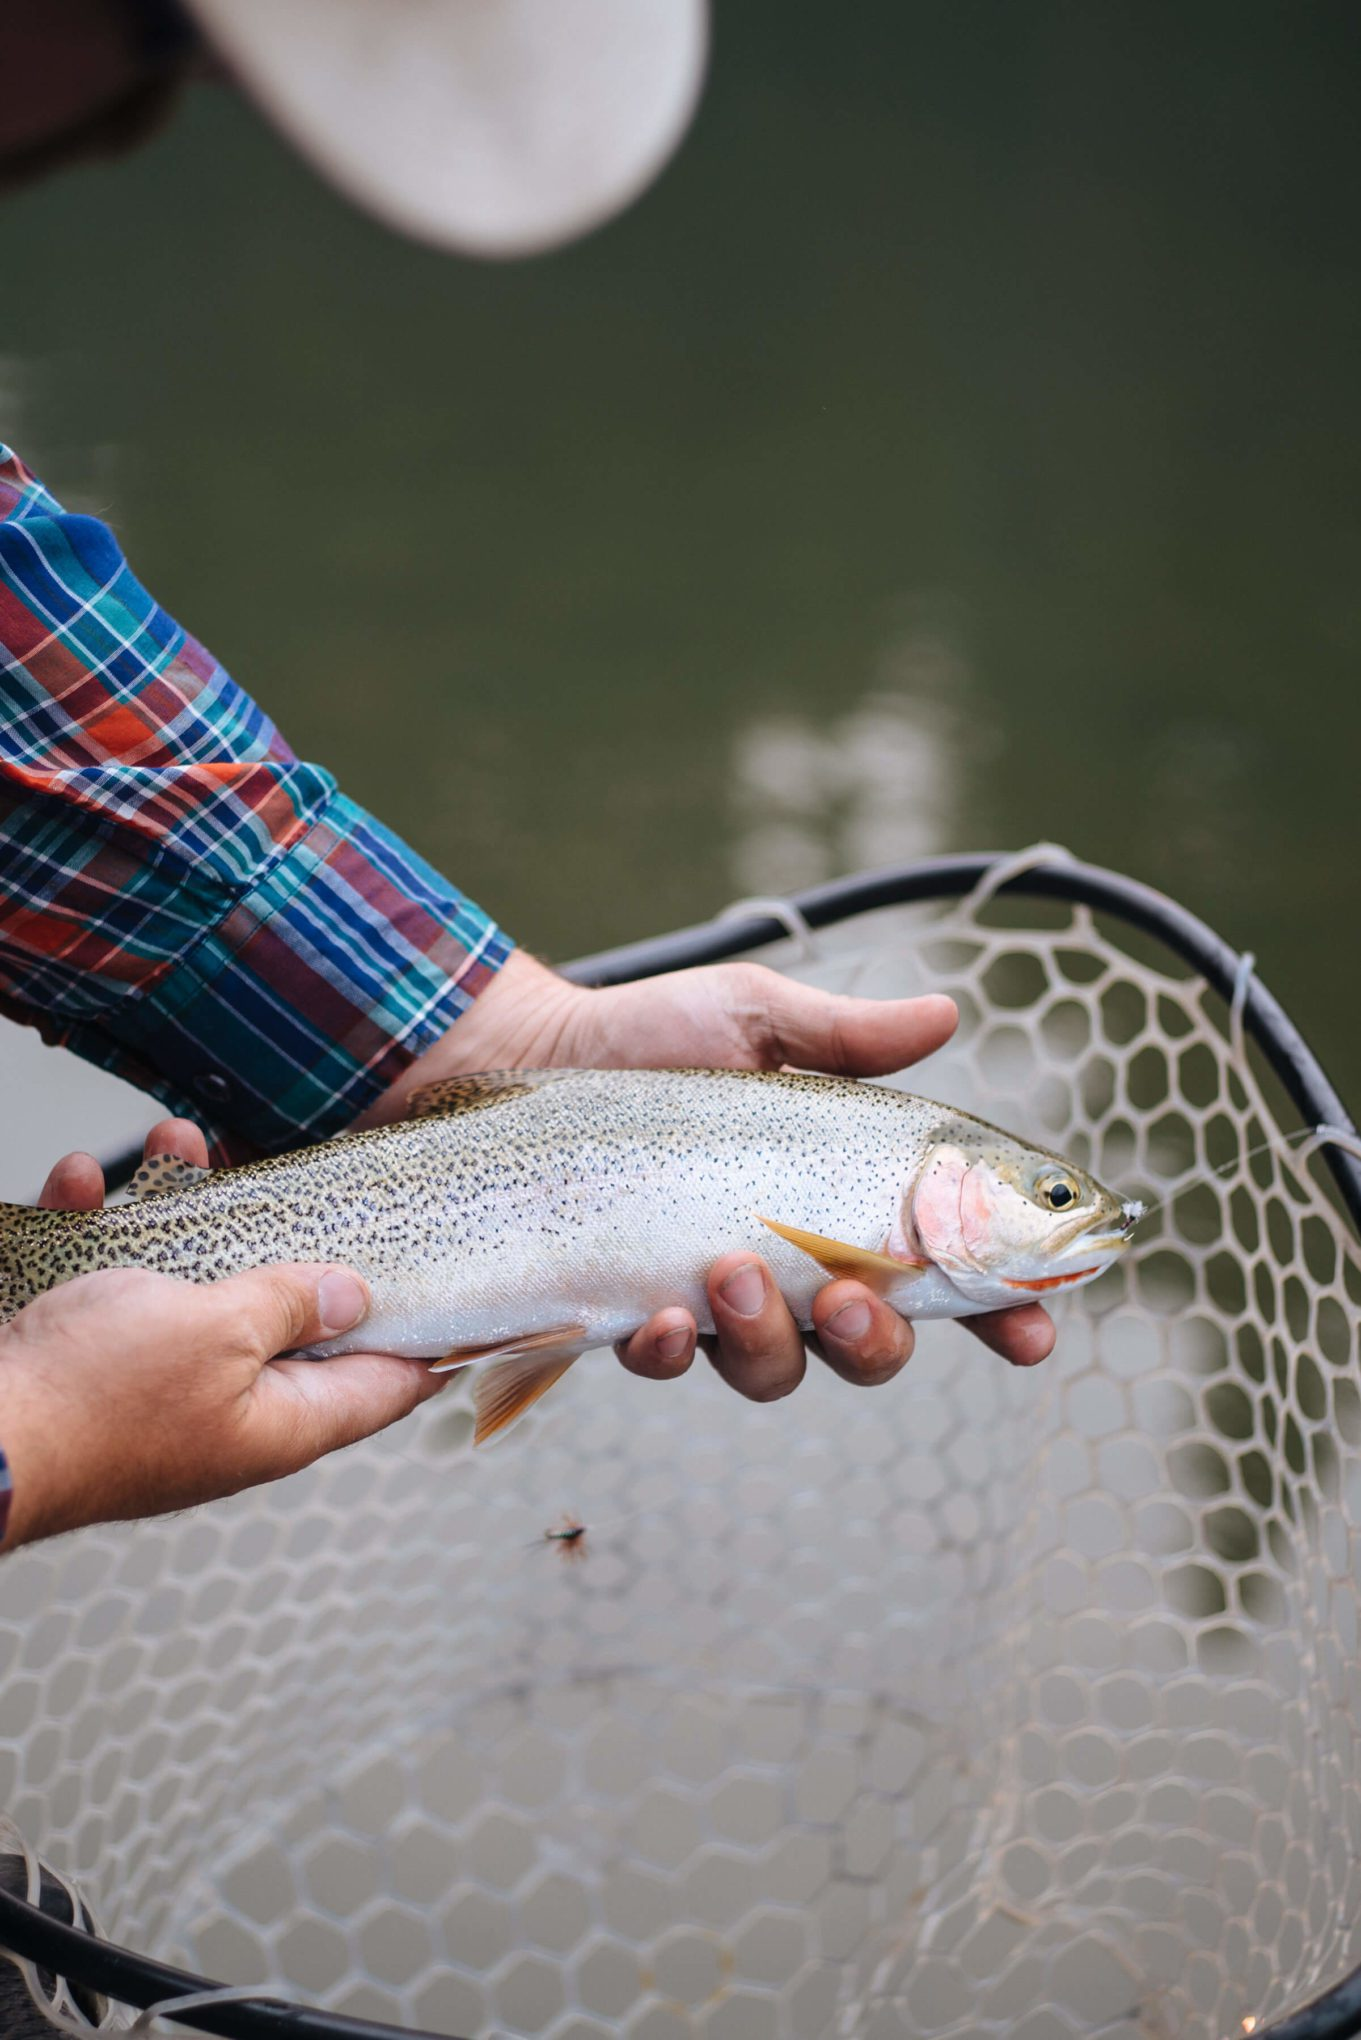 Fly fishing on the blackfoot river at paws up glamping in Montana, The Taste SF